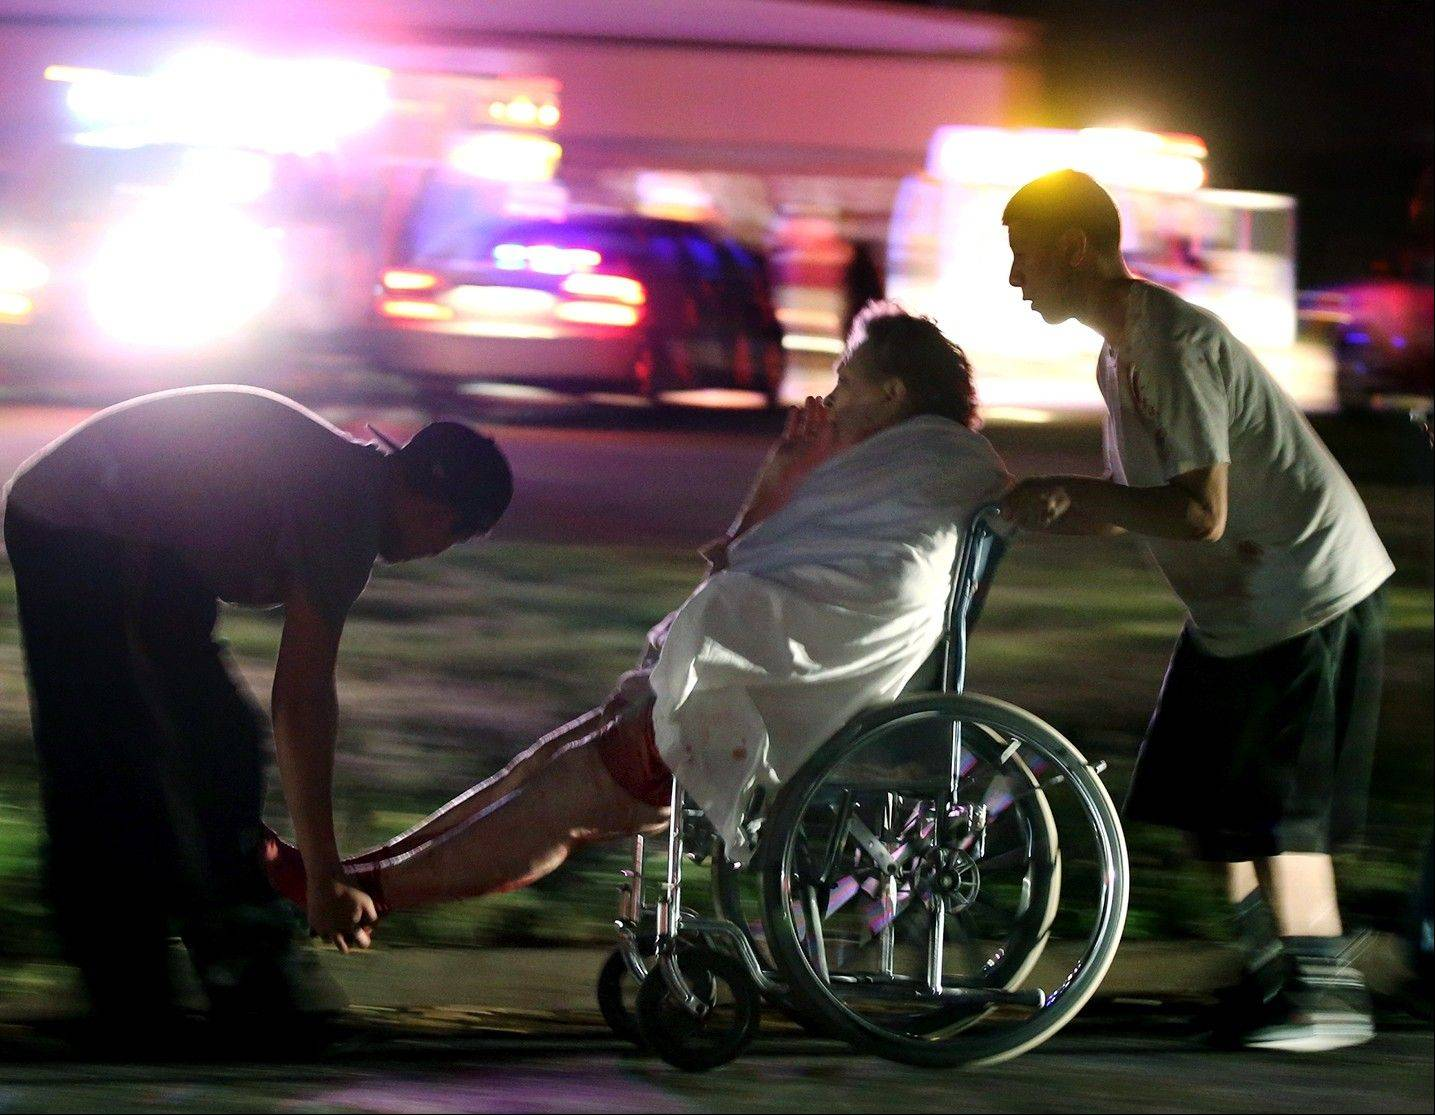 An injured elderly person is assisted as a nursing home is evacuated after an explosion at a nearby fertilizer plant Wednesday in West, Texas.